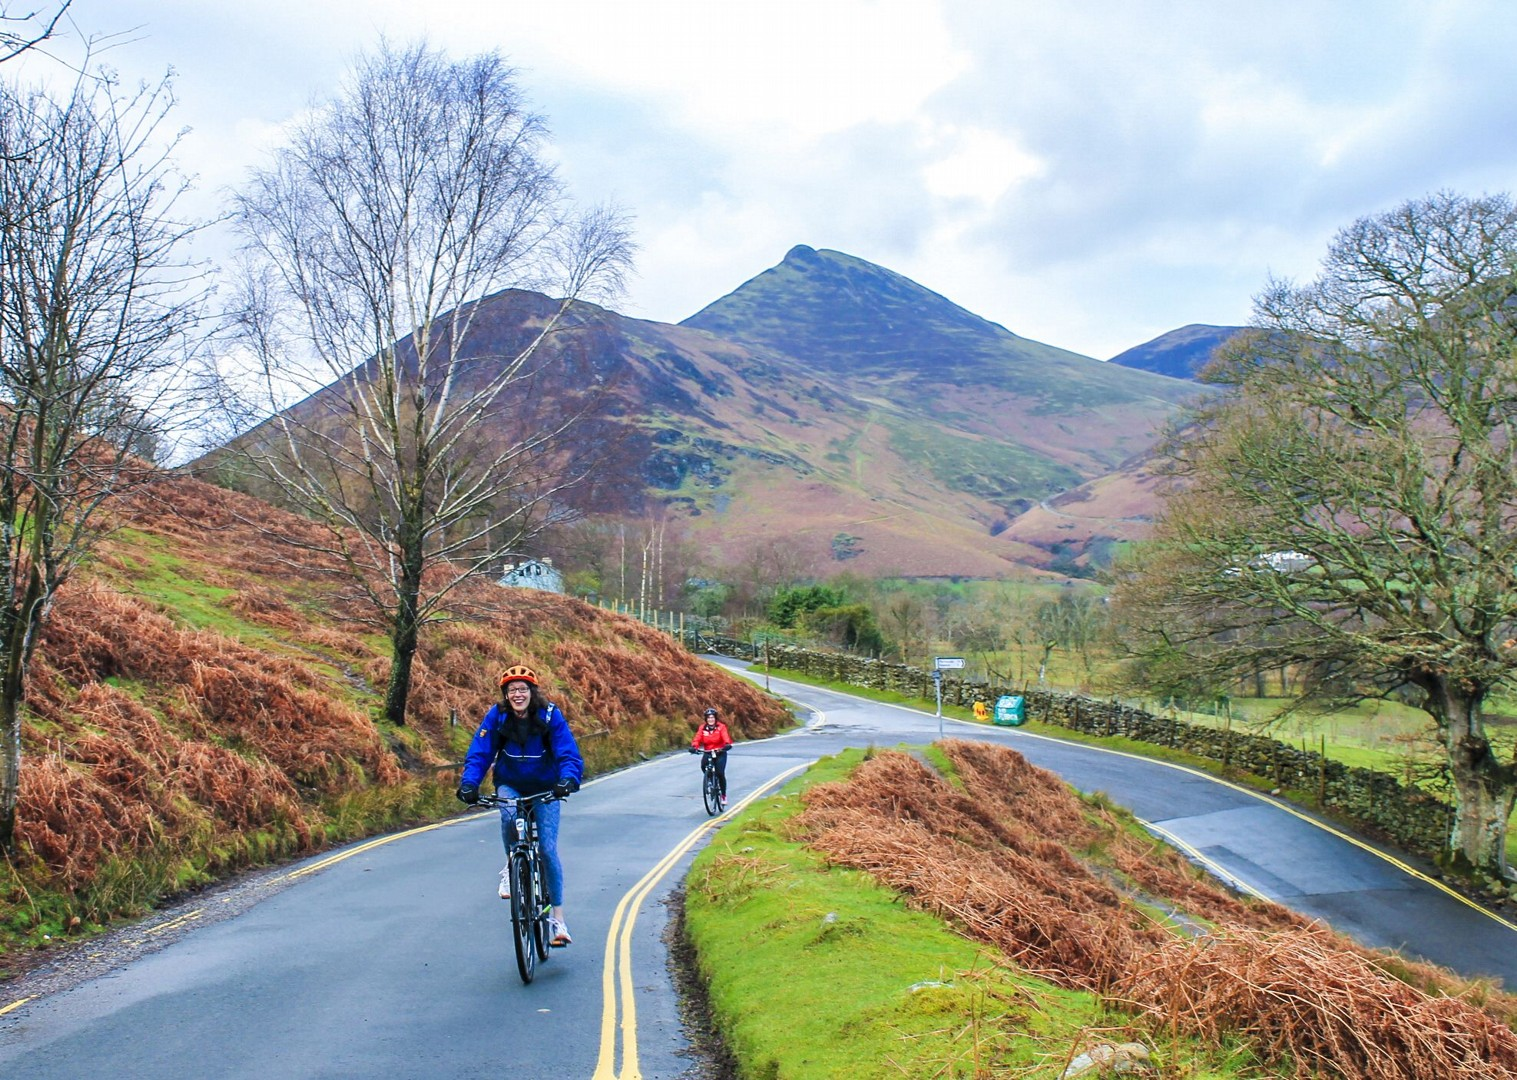 IMG_3774-2.jpg - UK - Lake District - Derwent Water - Guided Leisure Cycling Holiday - Leisure Cycling